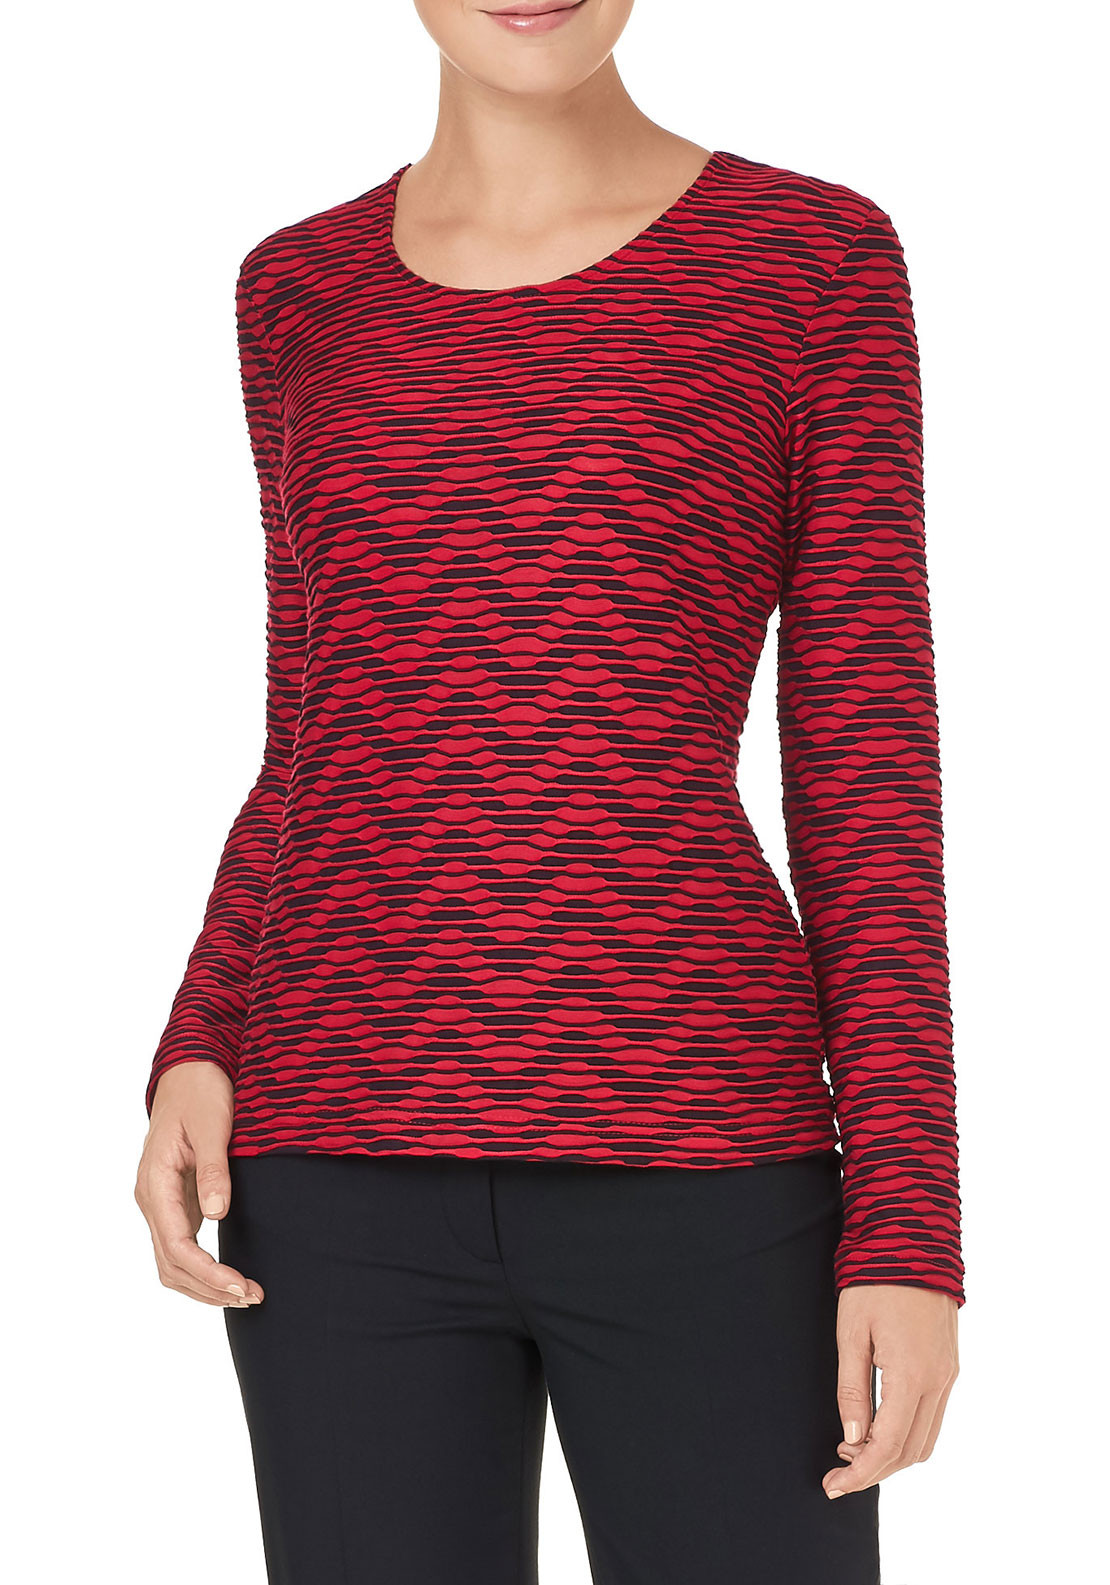 Gerry Weber Textured Print Top, Red & Black